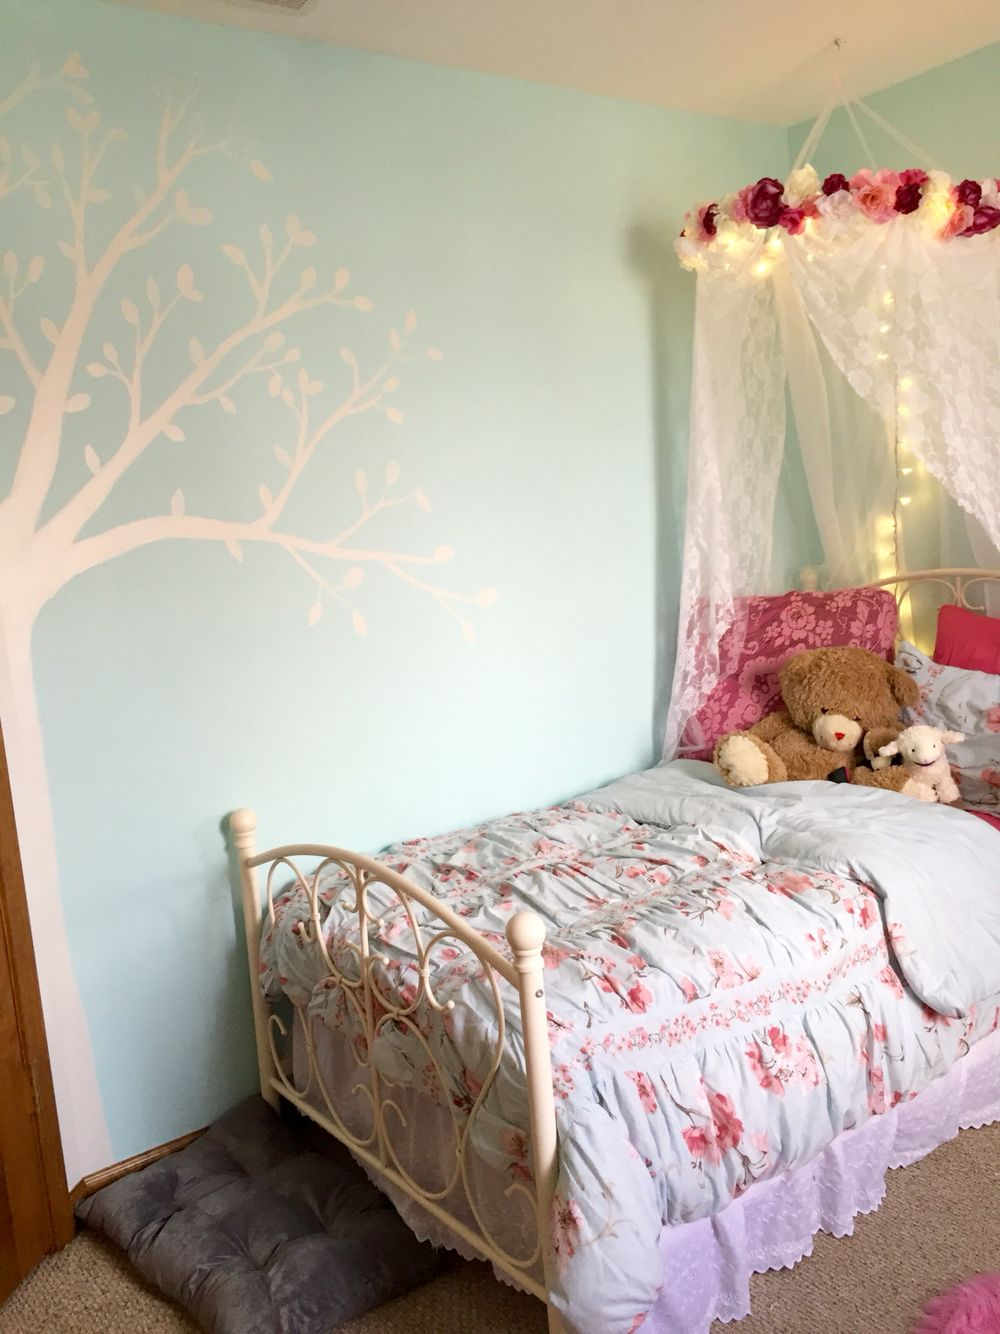 pink and blue girl 39 s room with canopy and tree mural tiny shabby chic bedroom diy hula hoop. Black Bedroom Furniture Sets. Home Design Ideas